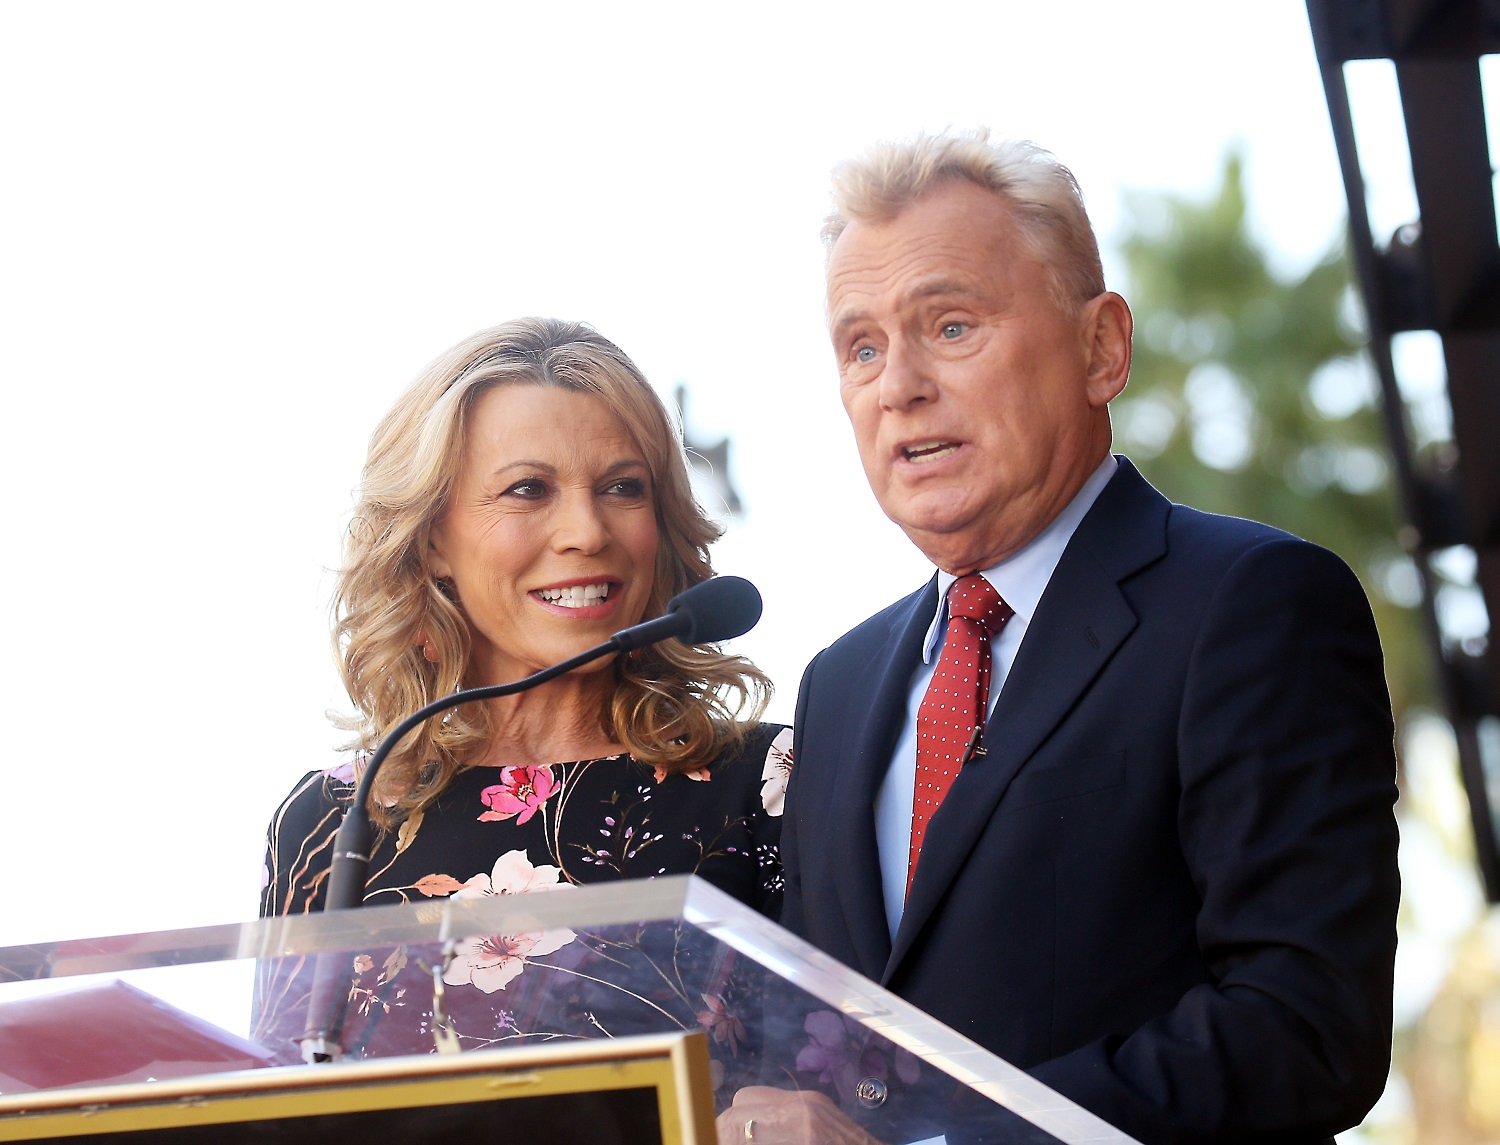 Vanna White and Pat Sajak of Wheel of Fortune